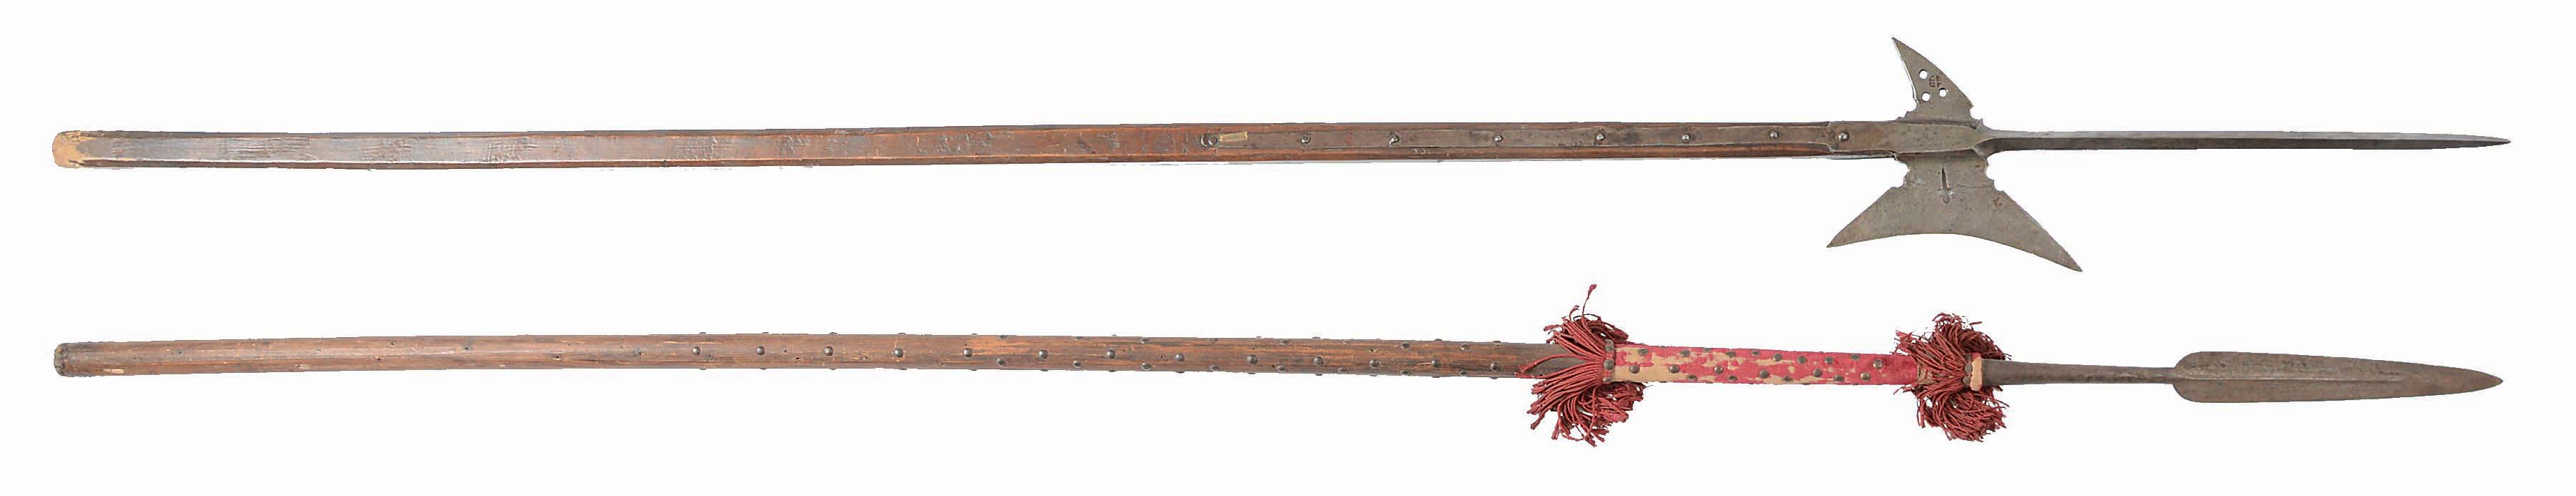 LOT OF 2: A Good LATE 16TH CENTURY HALBERD WITH PIERCED BLADE AND FLUKE AND...